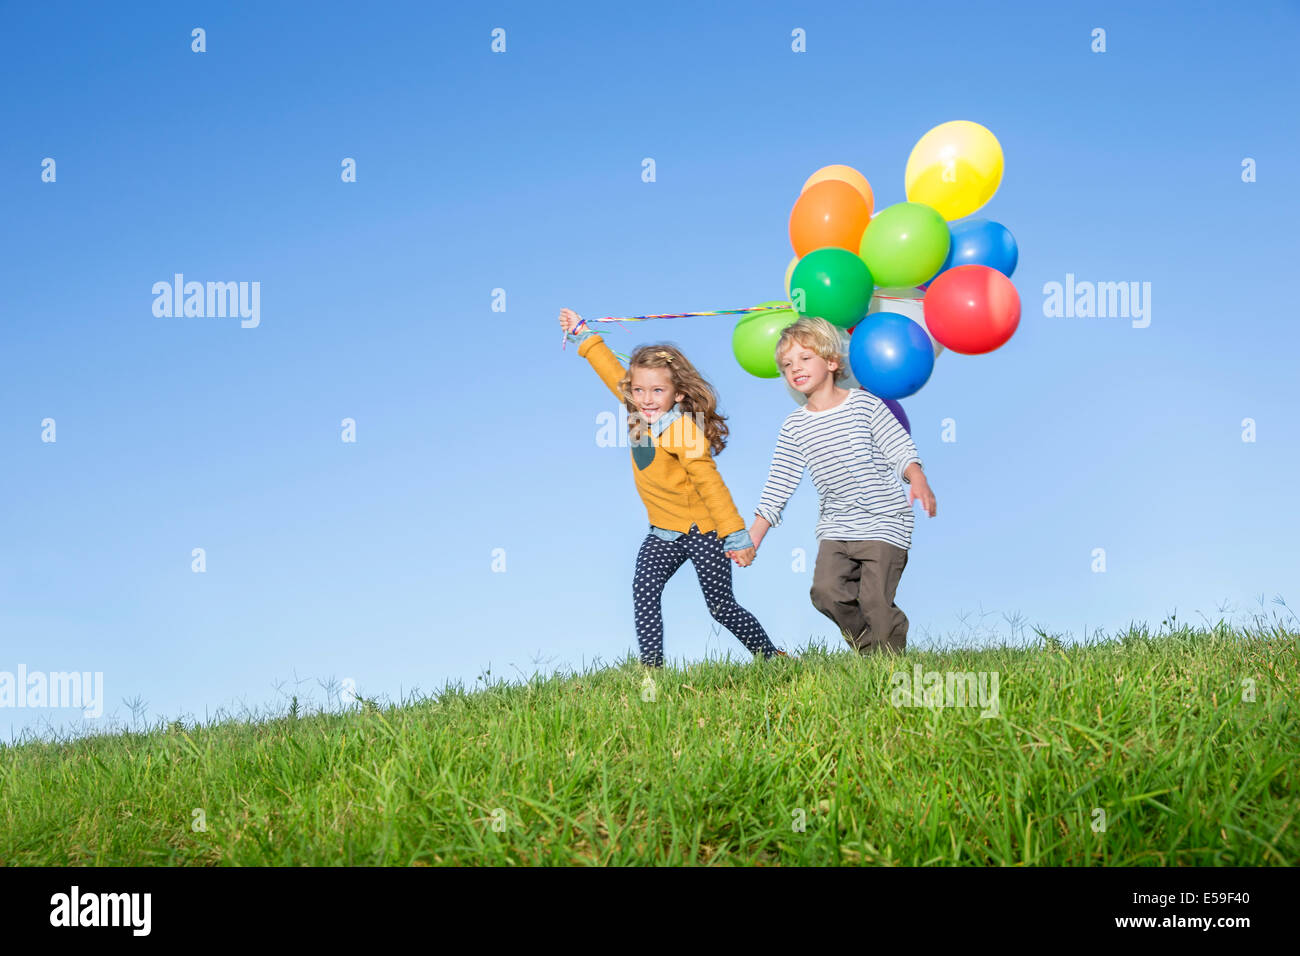 Children with bunch of balloons on grassy hill - Stock Image